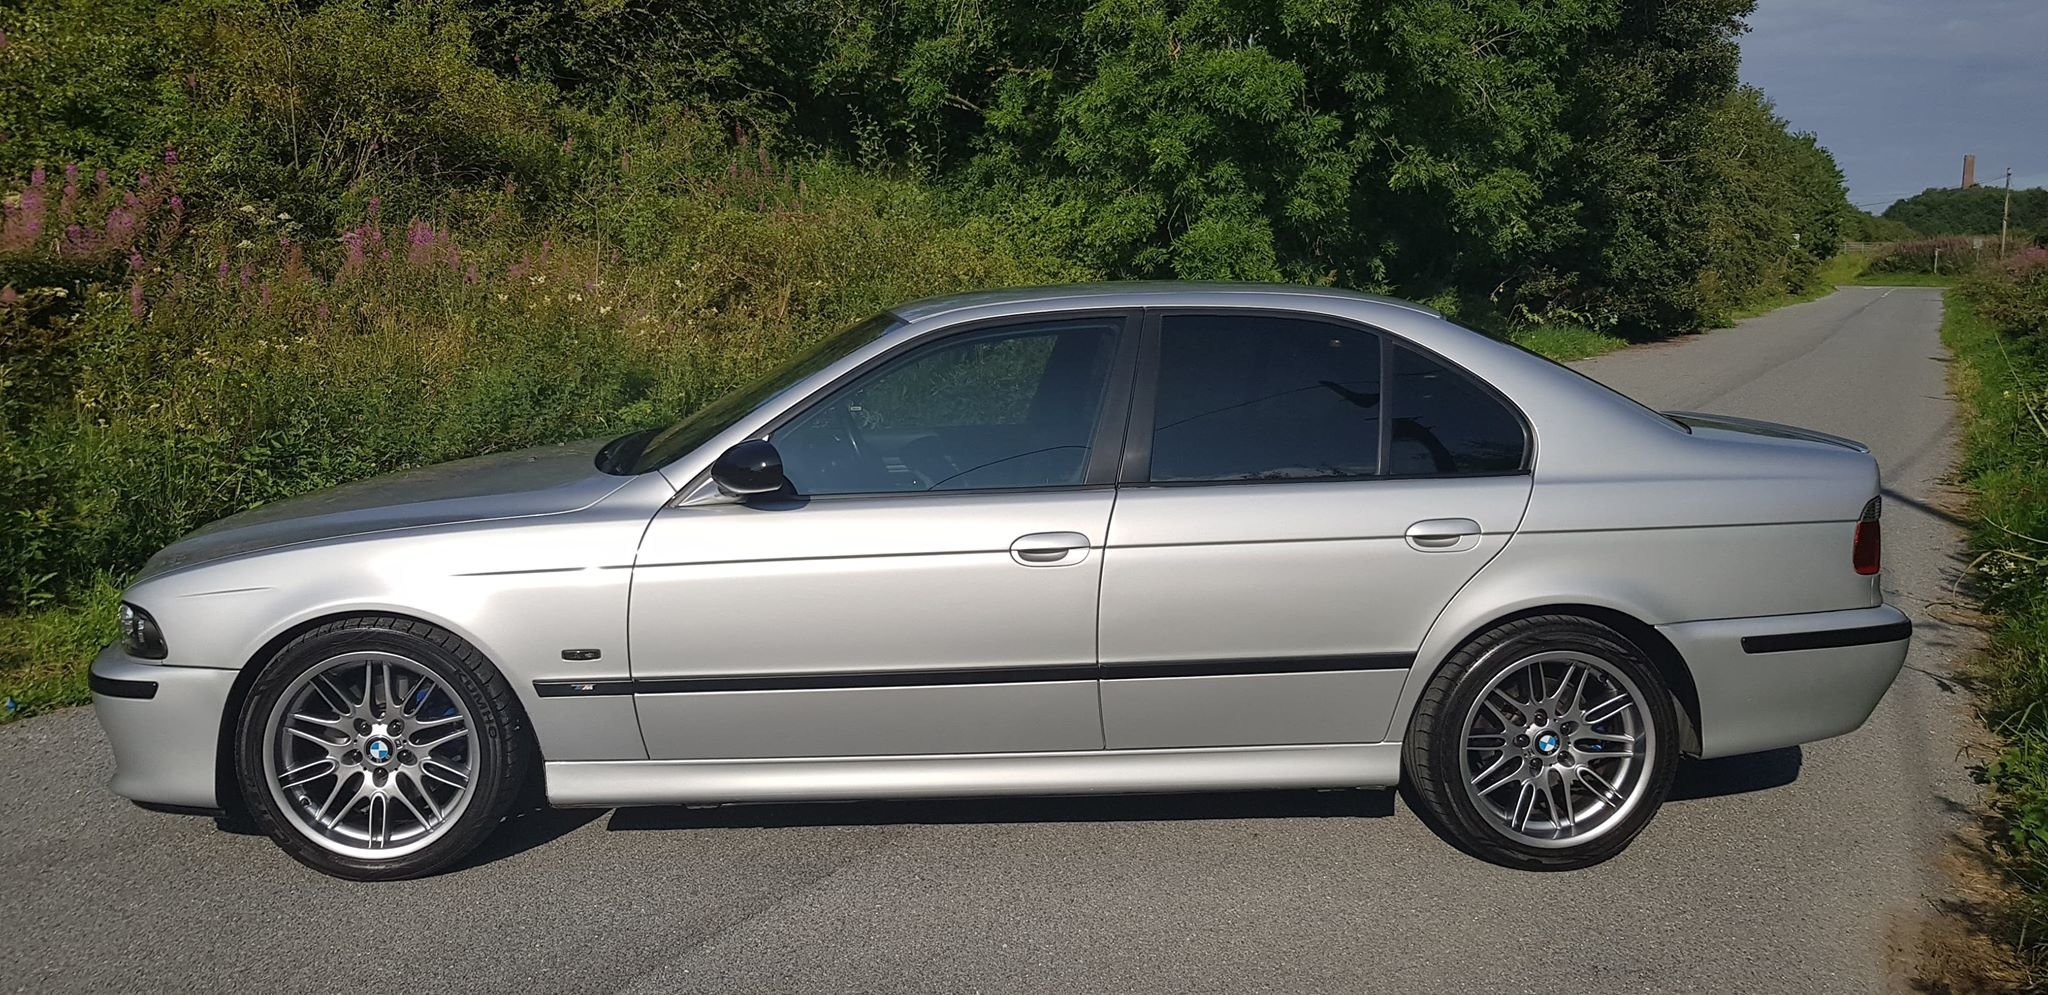 2001 Bmw 530i m-sport auto immaculate For Sale (picture 3 of 6)